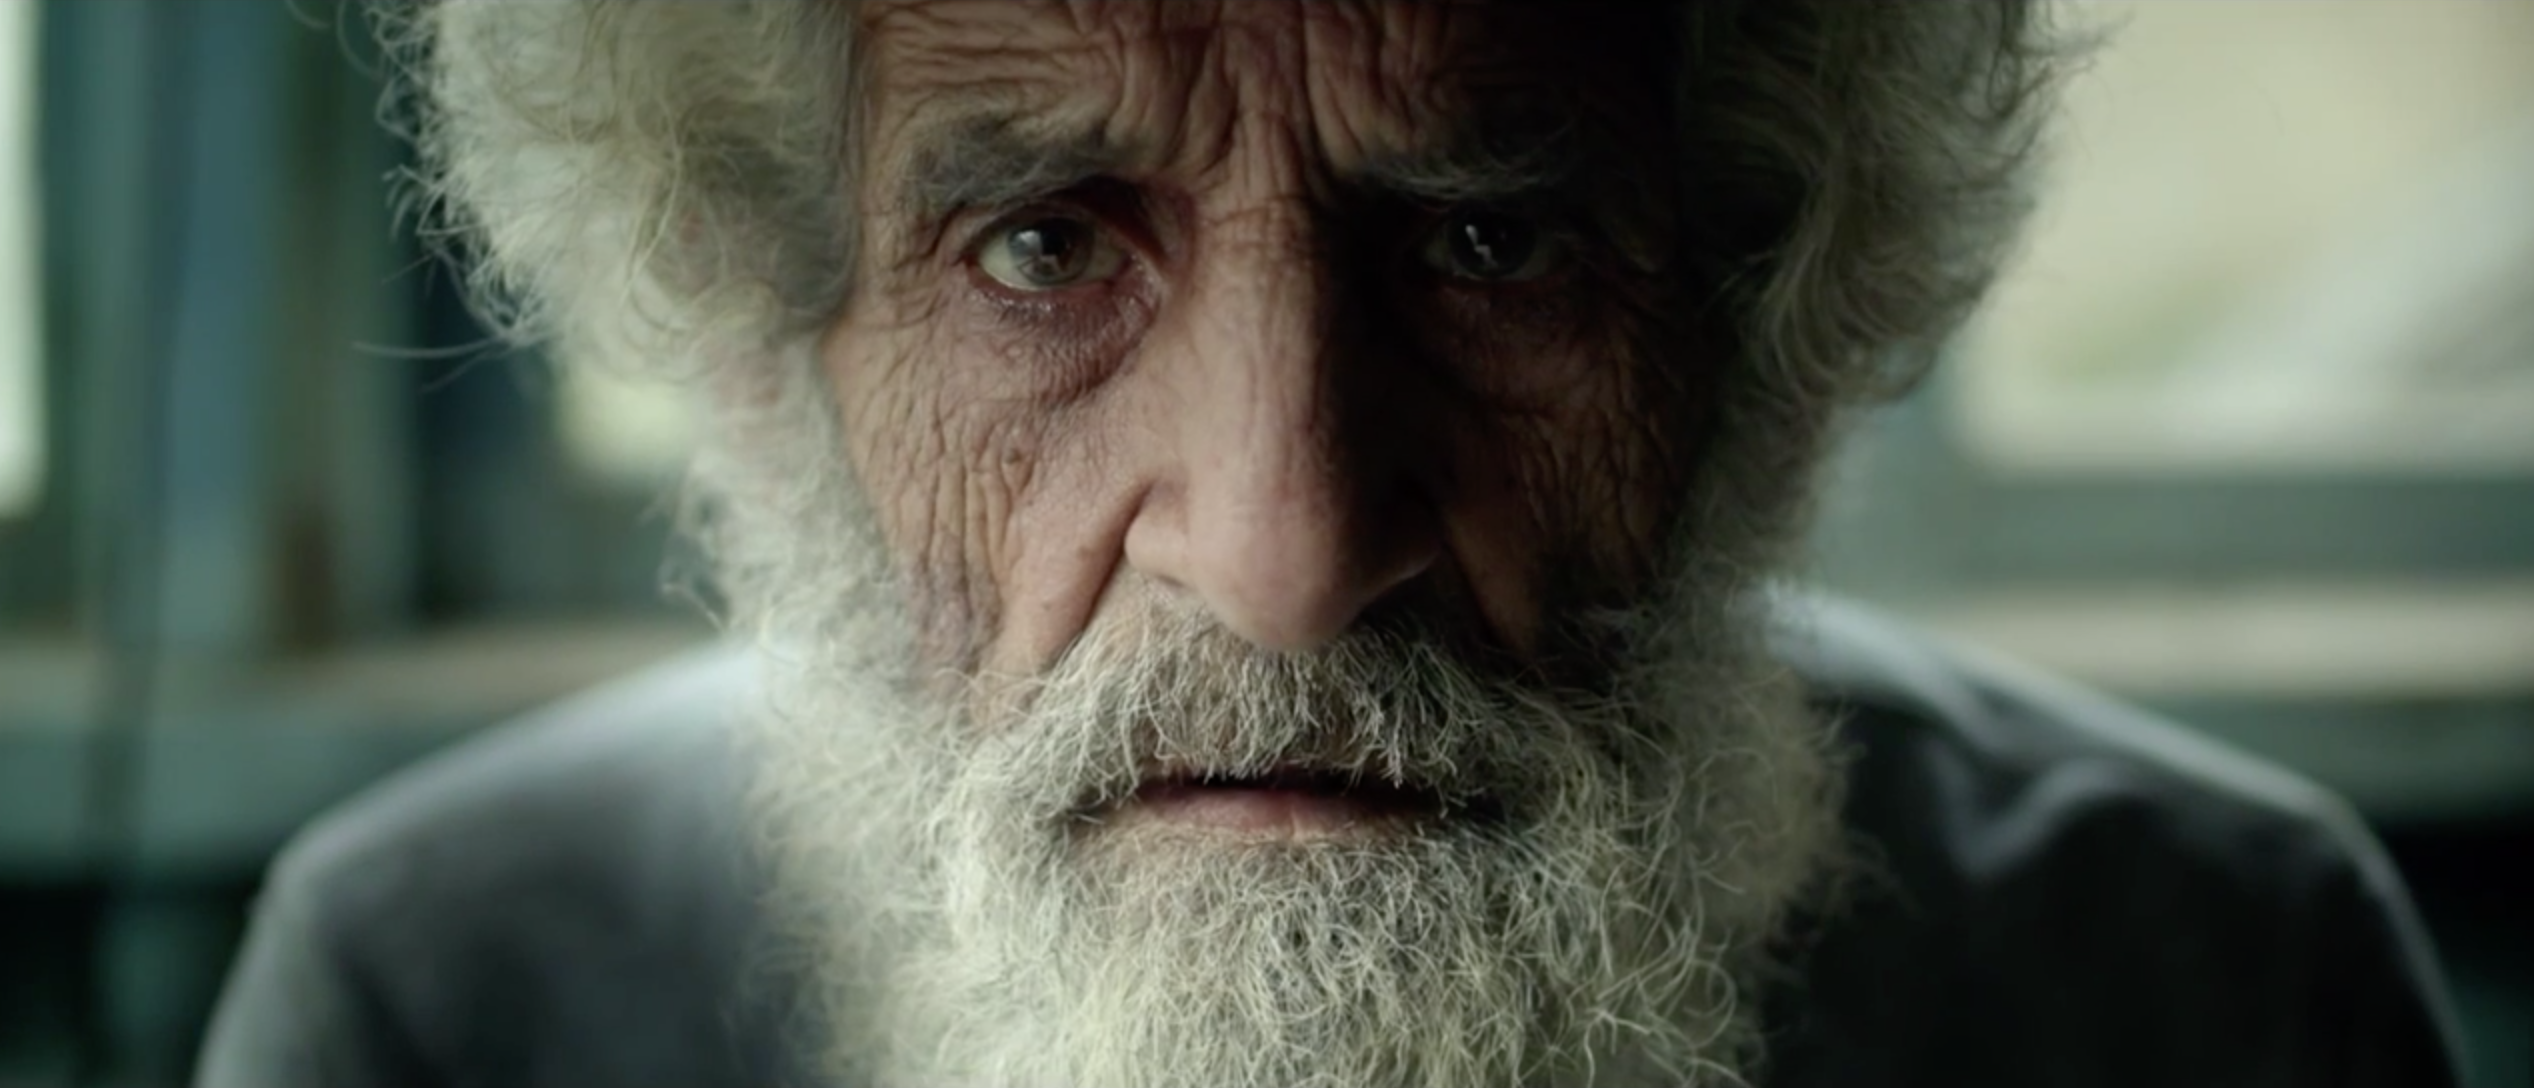 file magazine the last one is a short film directed by sergey pikalov about the last living world war ii veteran the old man had outlived everyone